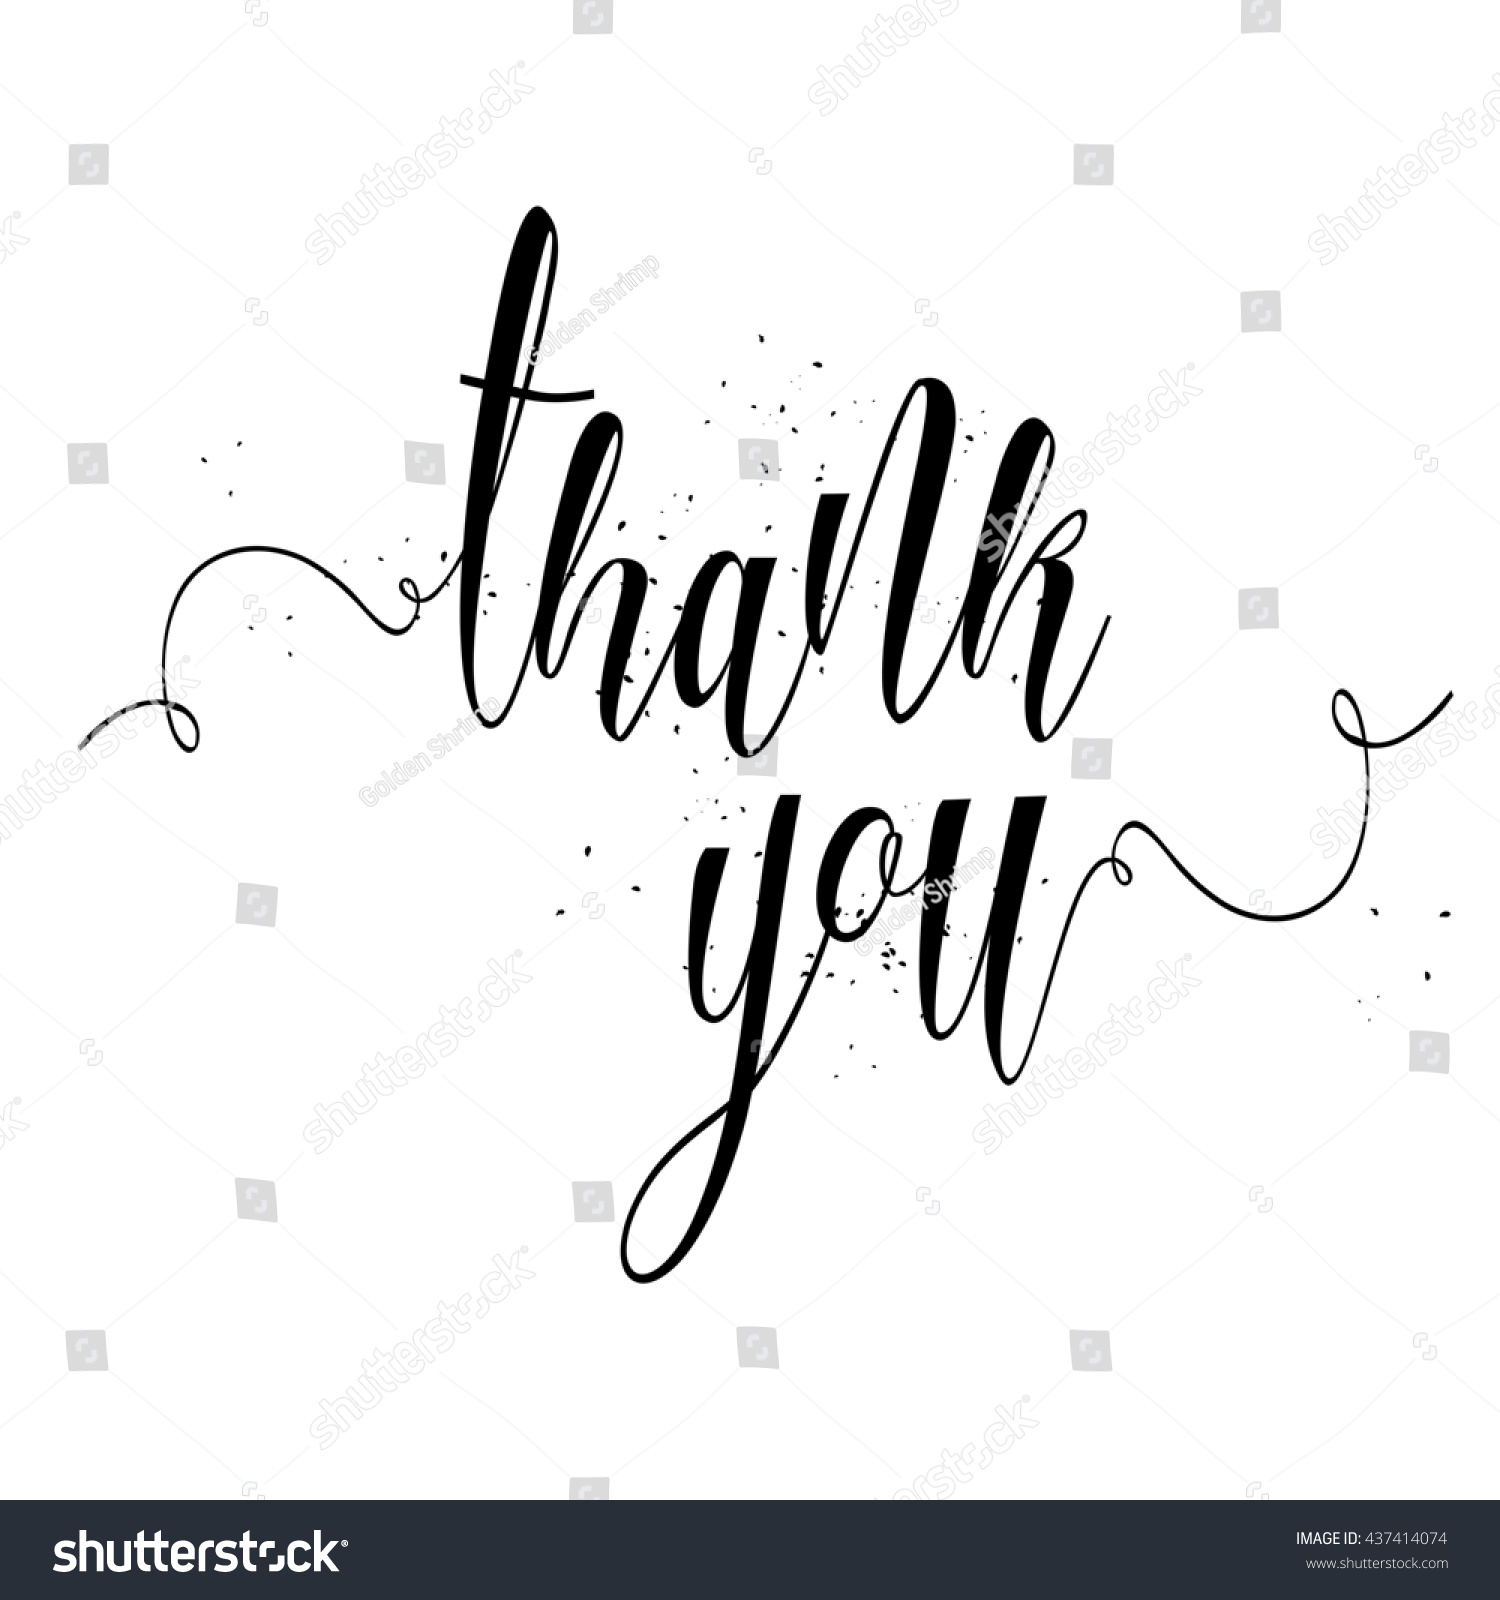 Thank you calligraphy sign brush painted stock